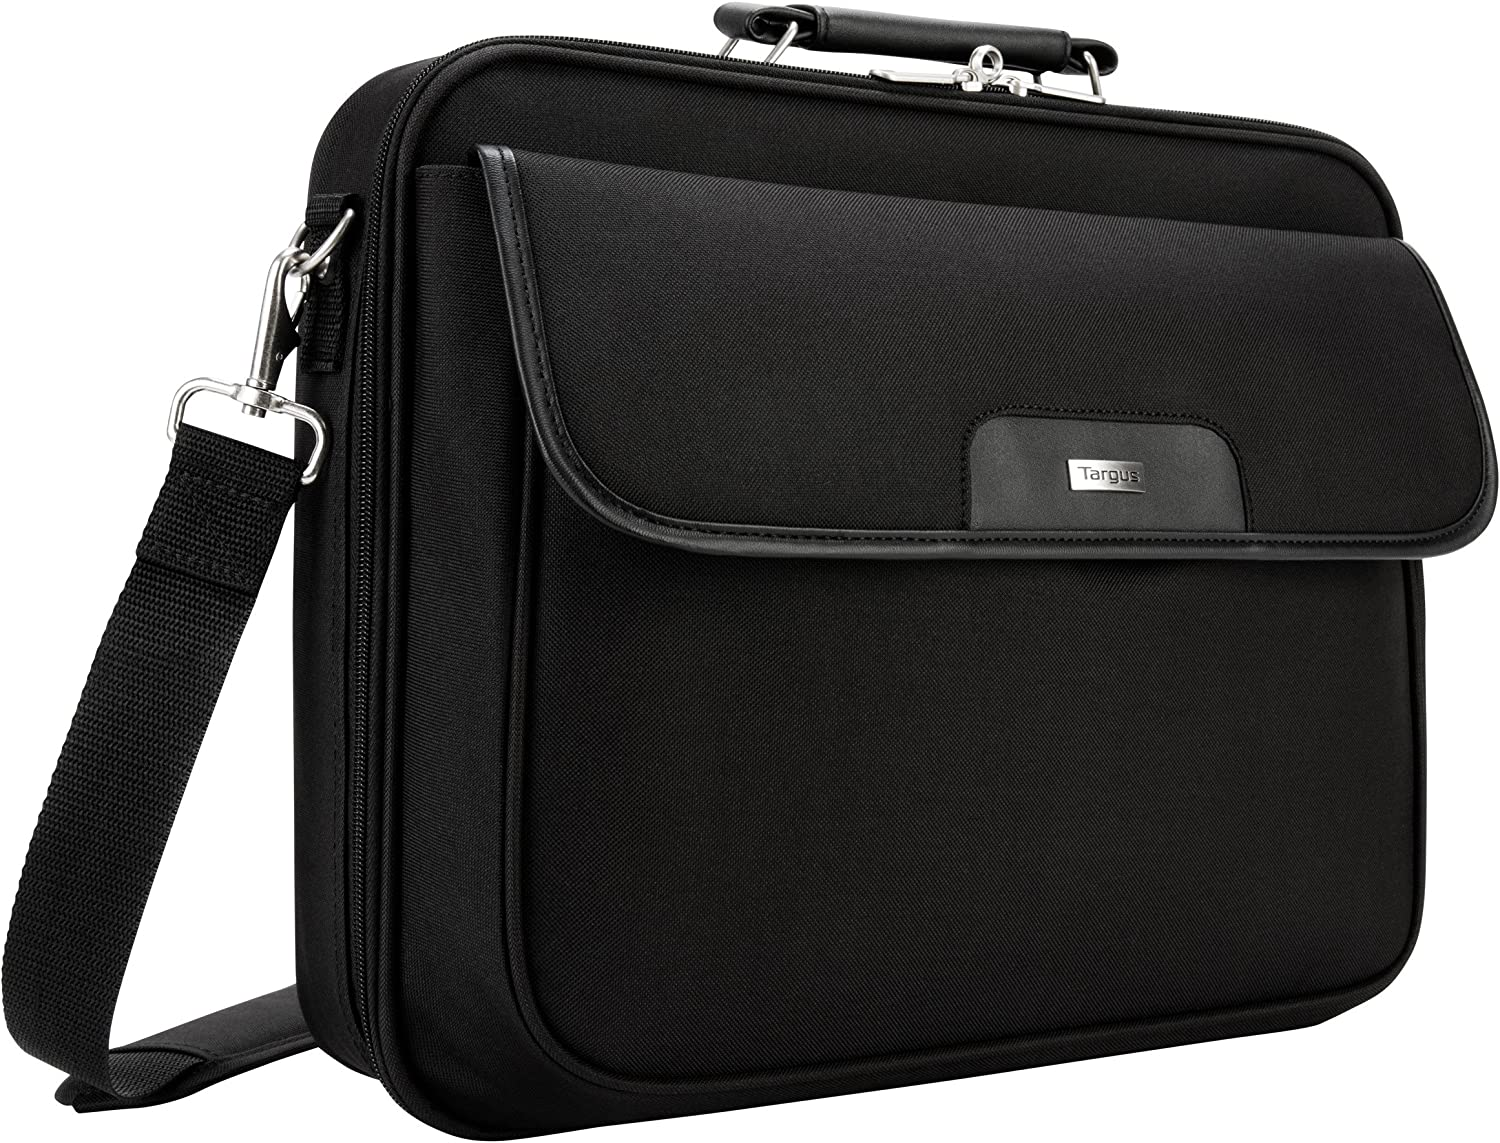 Targus Traditional Notepac Case Messenger Bag with Business Workspace Compartment for File Organization, Removable Shoulder Strap, Trolley Strap, Padded Protection fits 15.4-Inch Laptop, Black (GSA-OCN1)